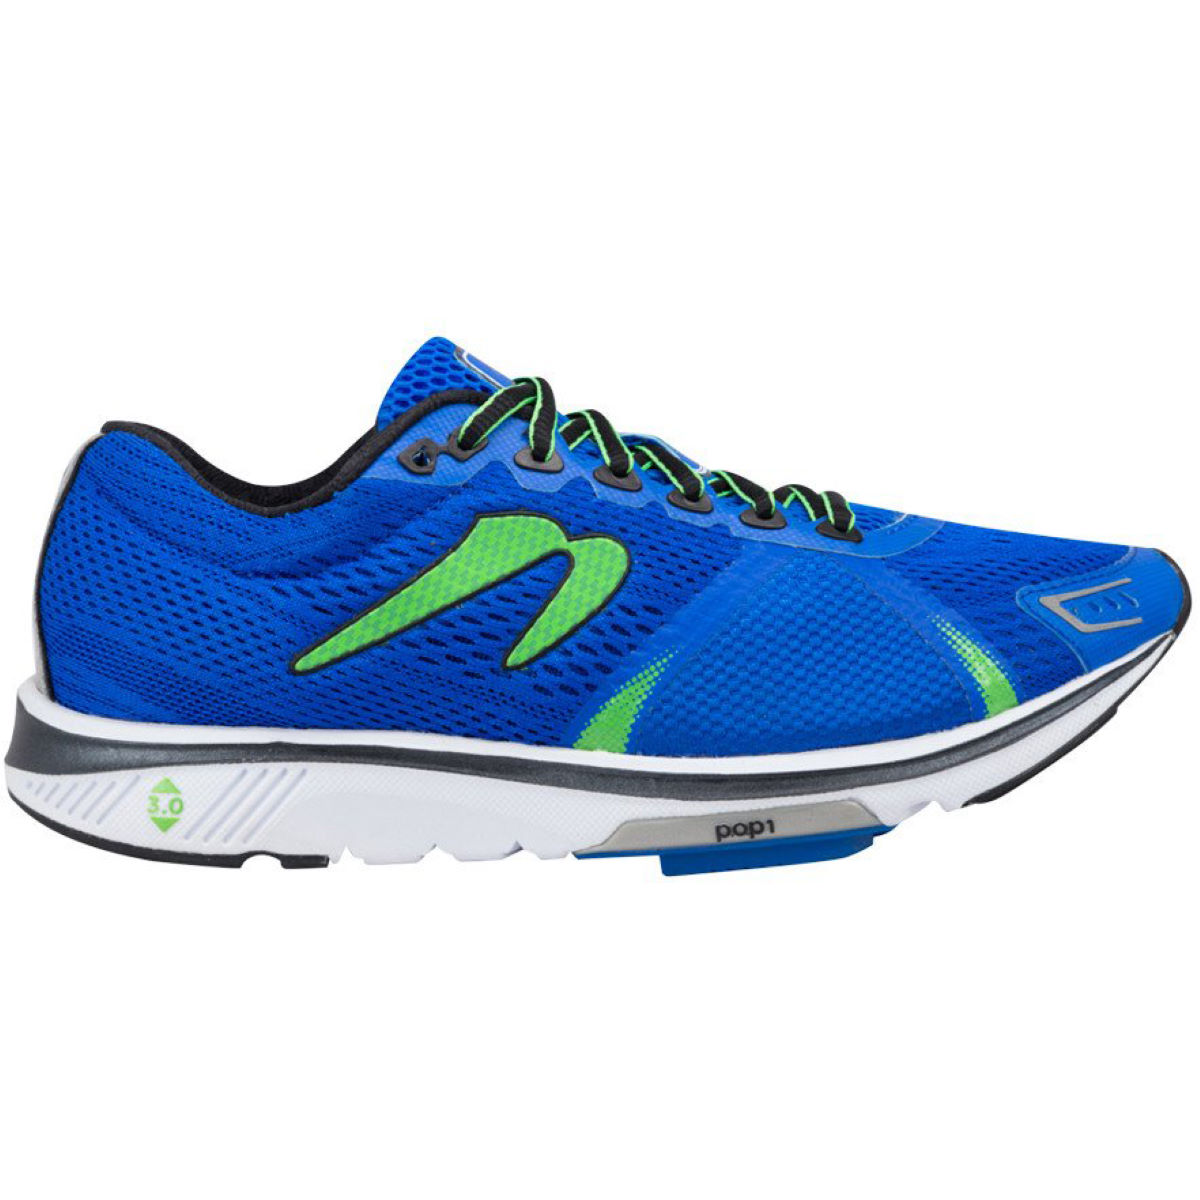 Chaussures Newton Running Shoes Gravity VI - 12 UK Bleu